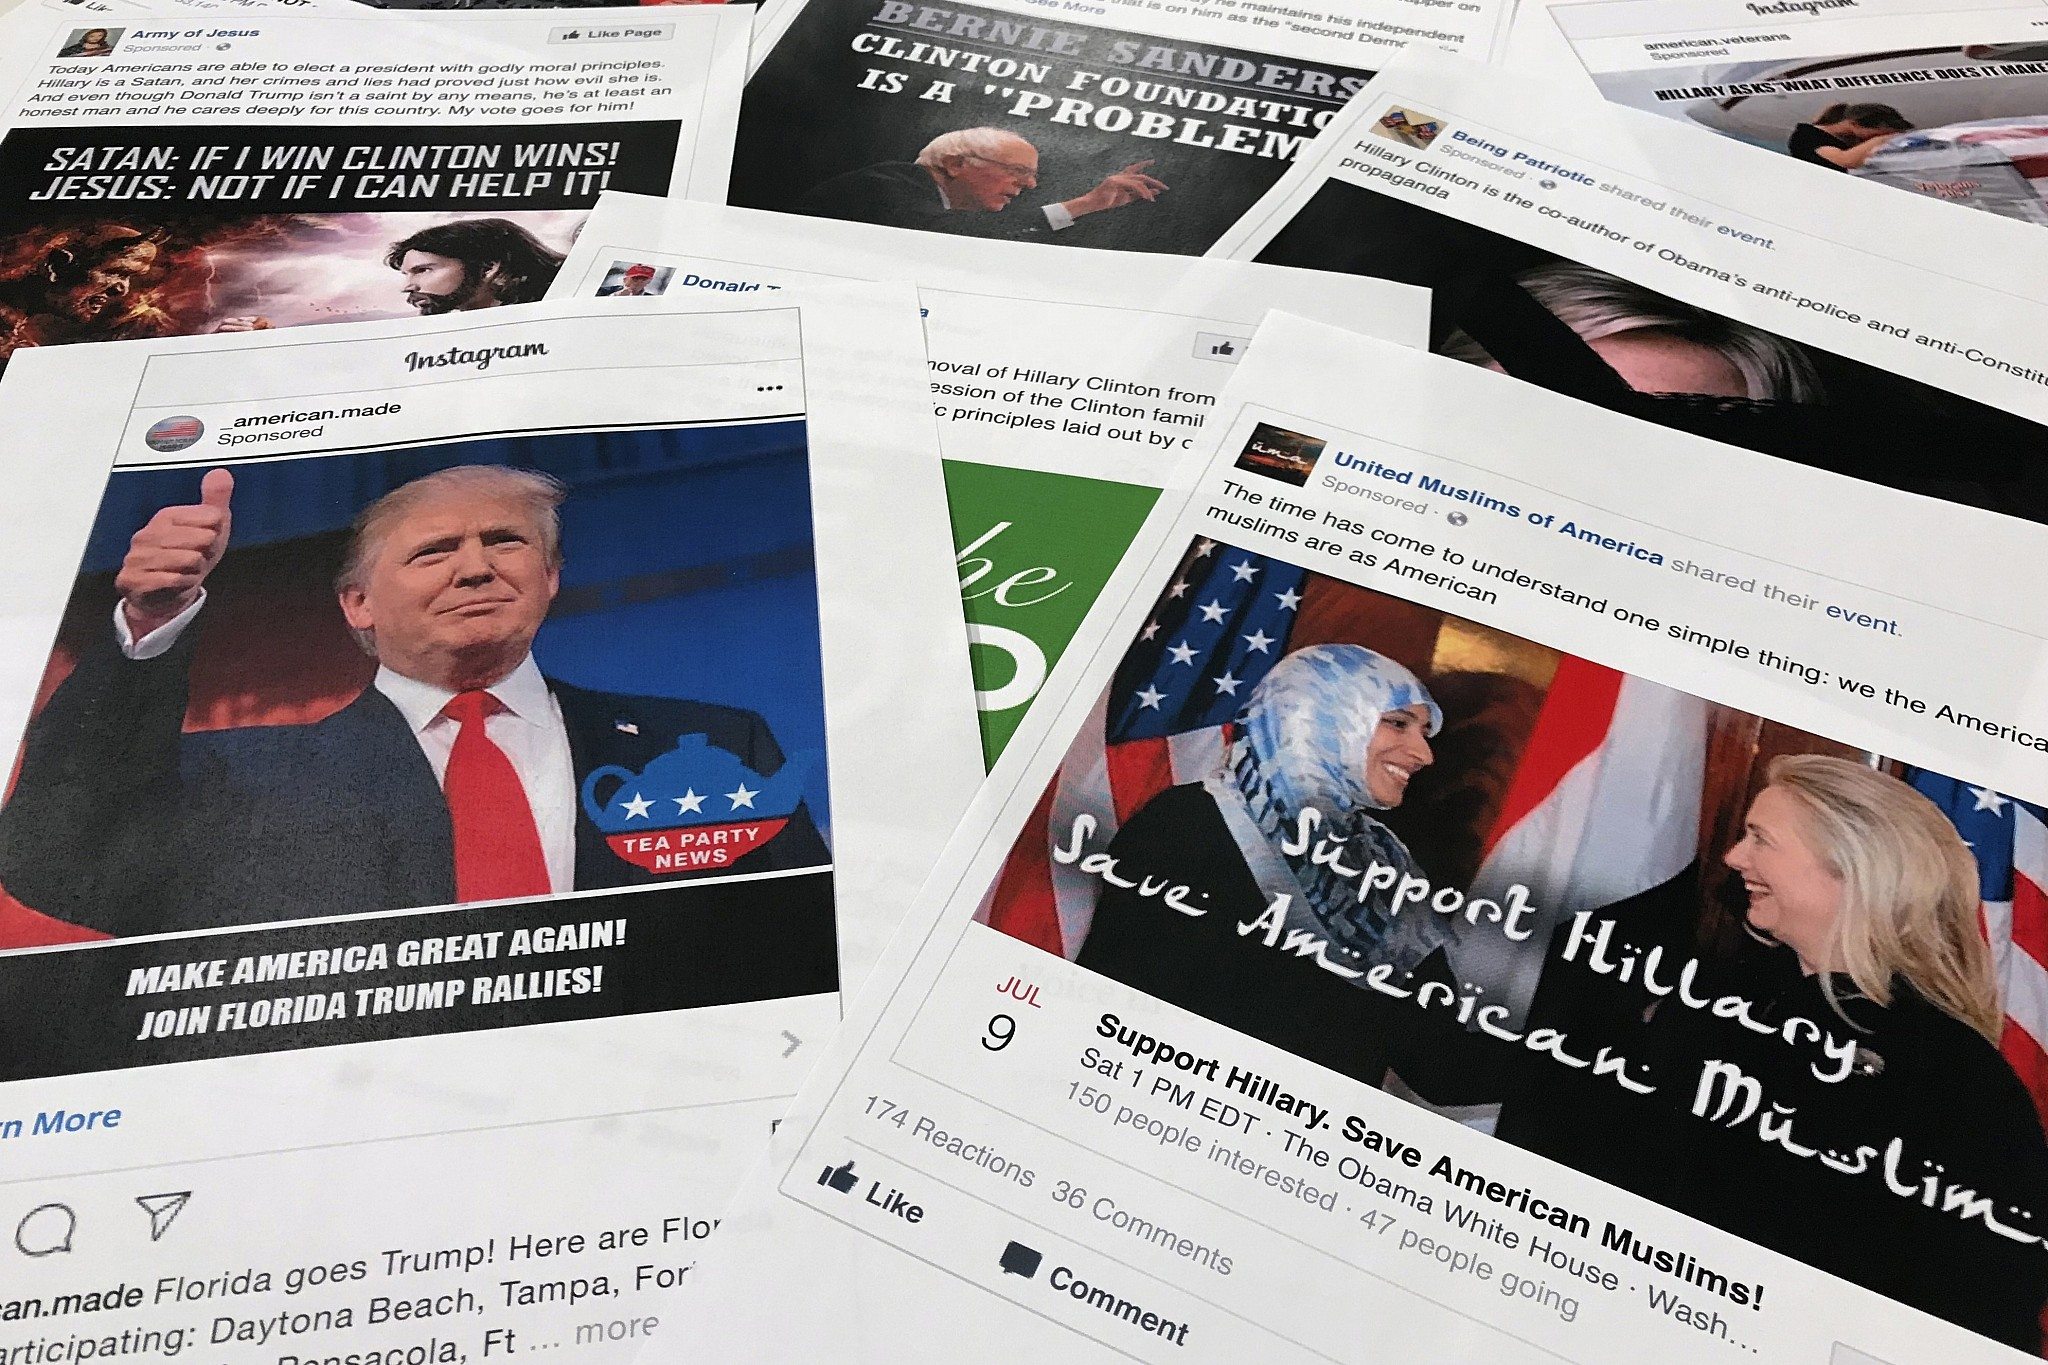 Russian Federation used every major social media platform to sway voters to Trump